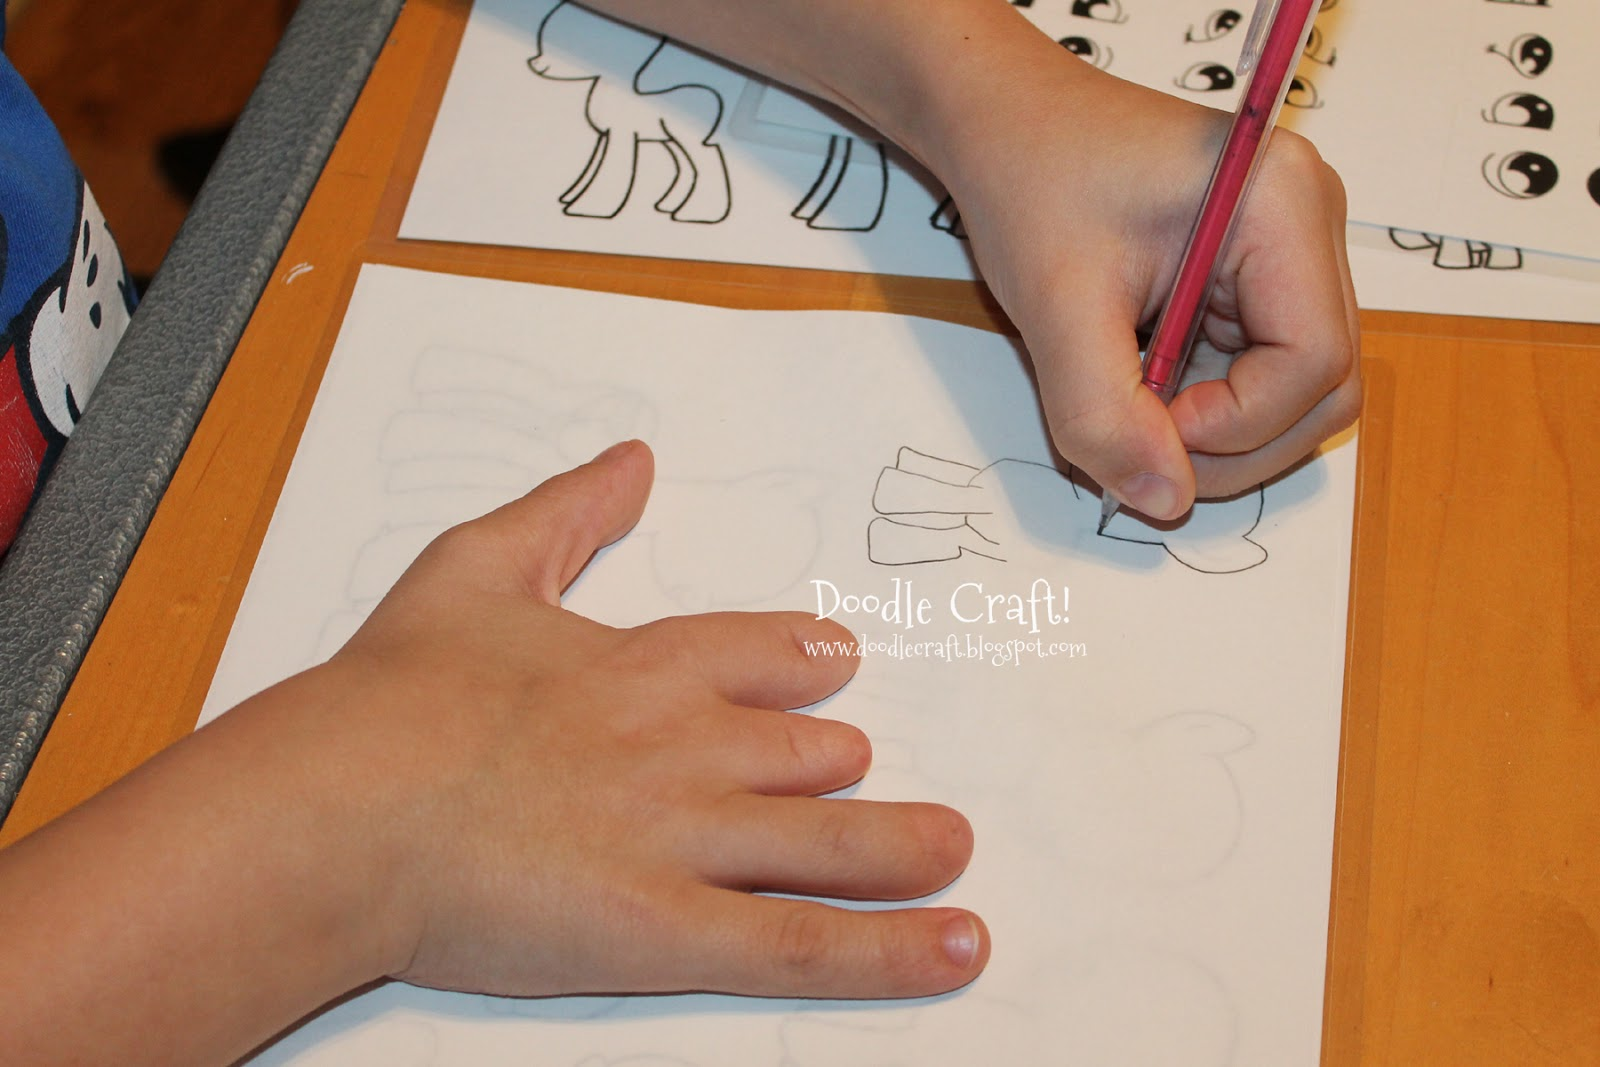 Then the kids could trace ponies to their hearts content